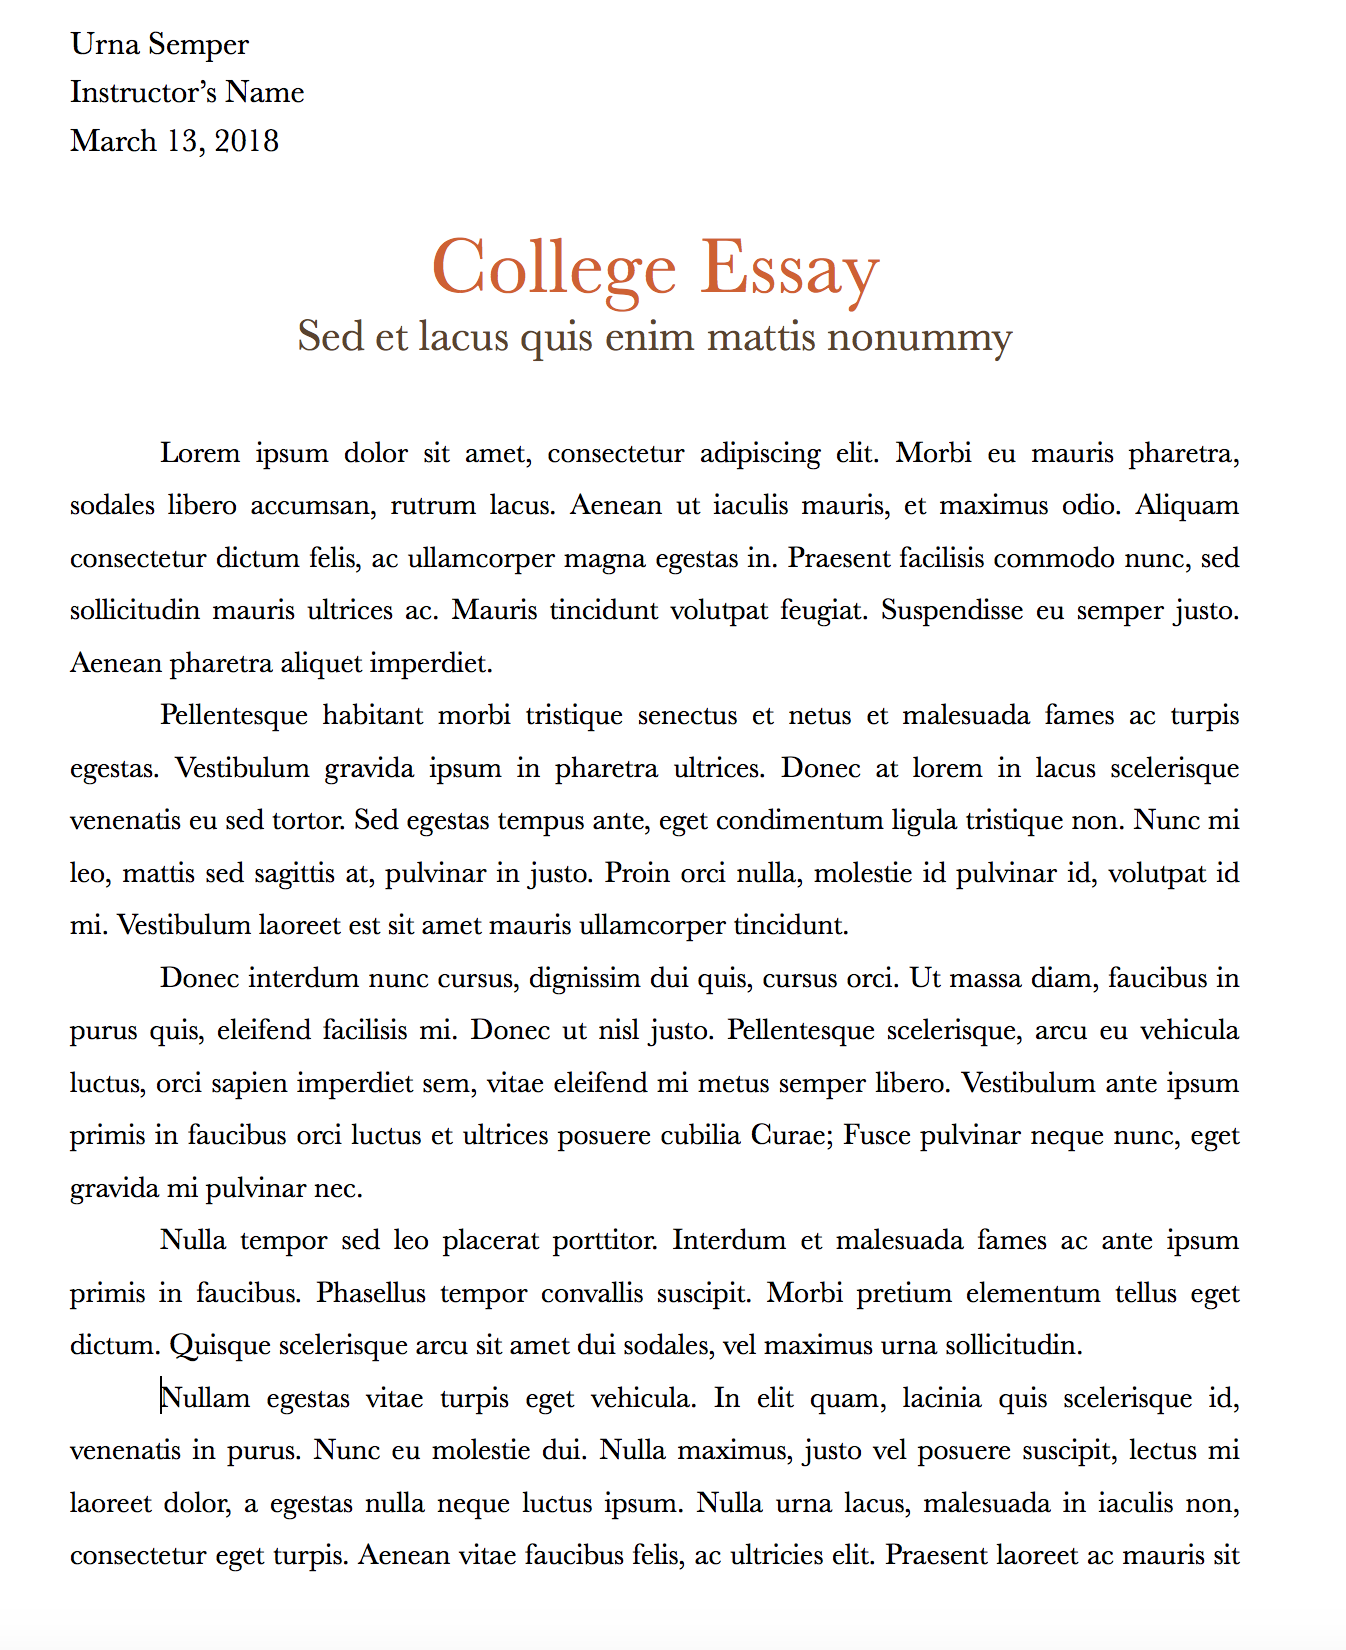 001 What Makes You Unique Essay Example How To Write An Interesting And Captivating College Application Ctwrvkoshcimzkxyhyl8 With Parag Sensational Examples Mba Question Full